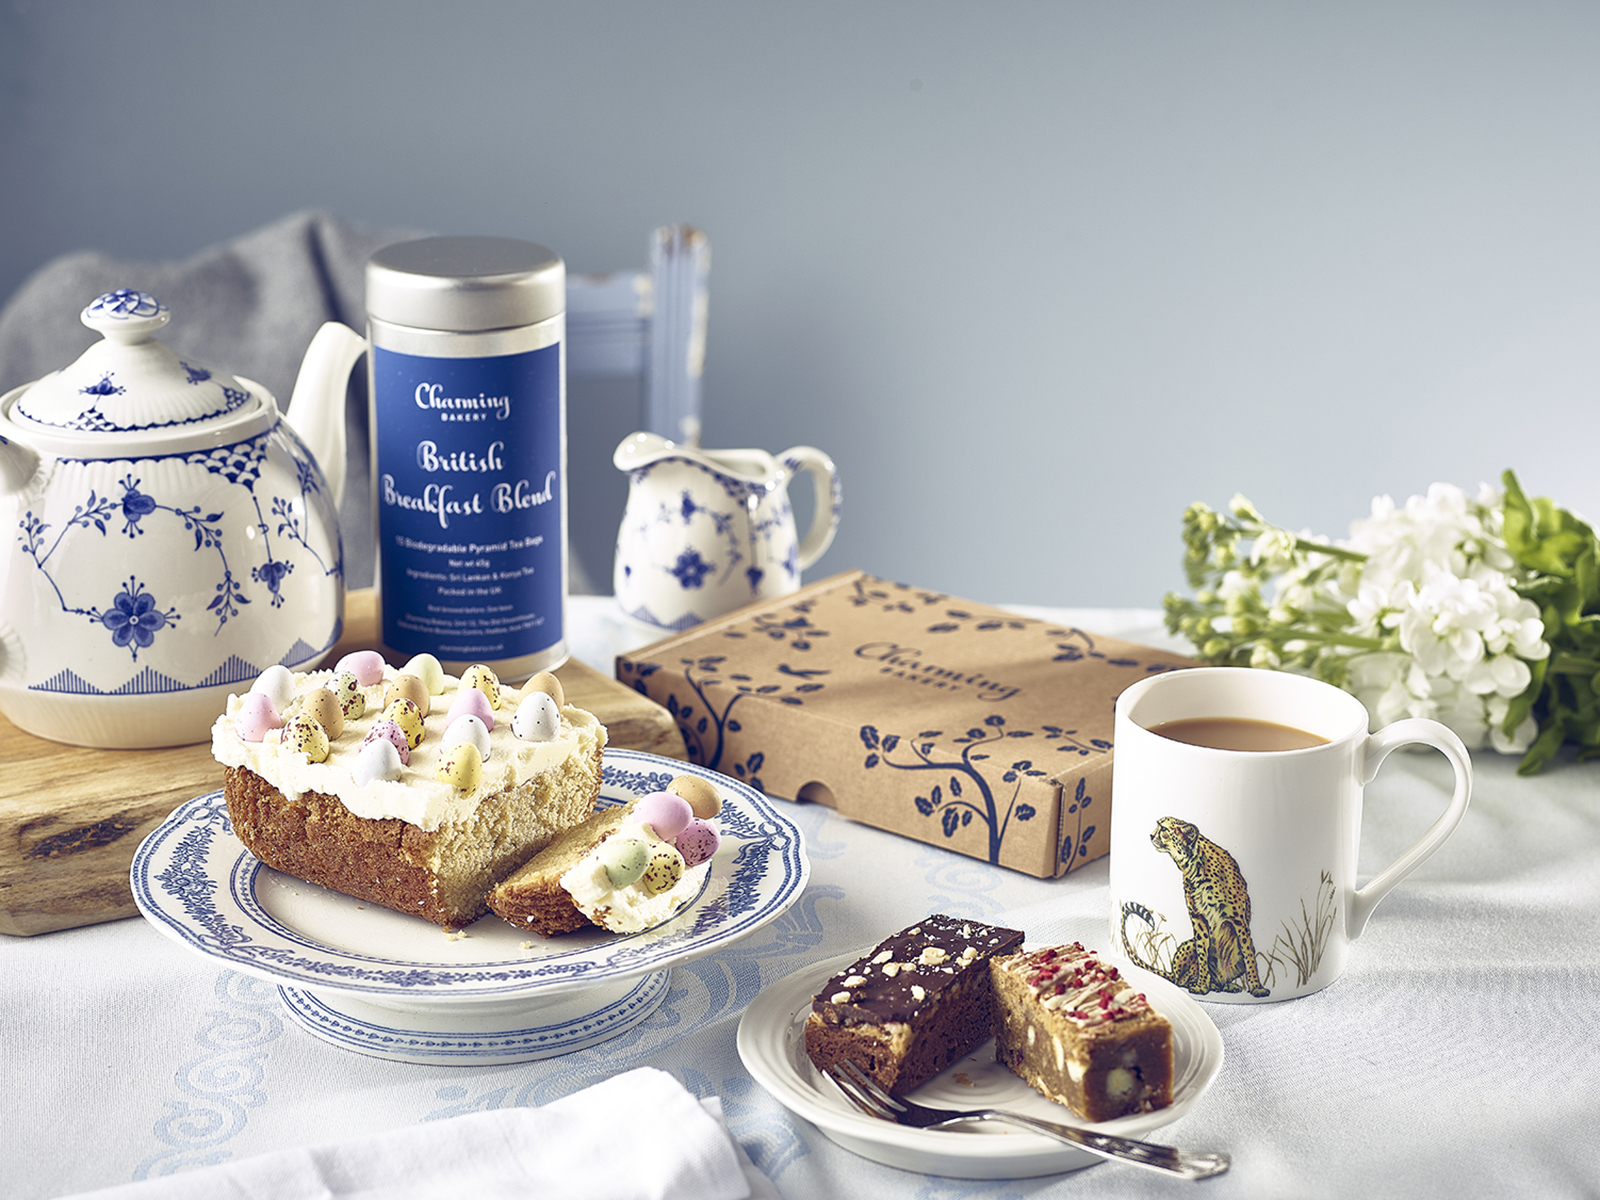 Easter Cake, Tea and Brownie - Lifestyle shot